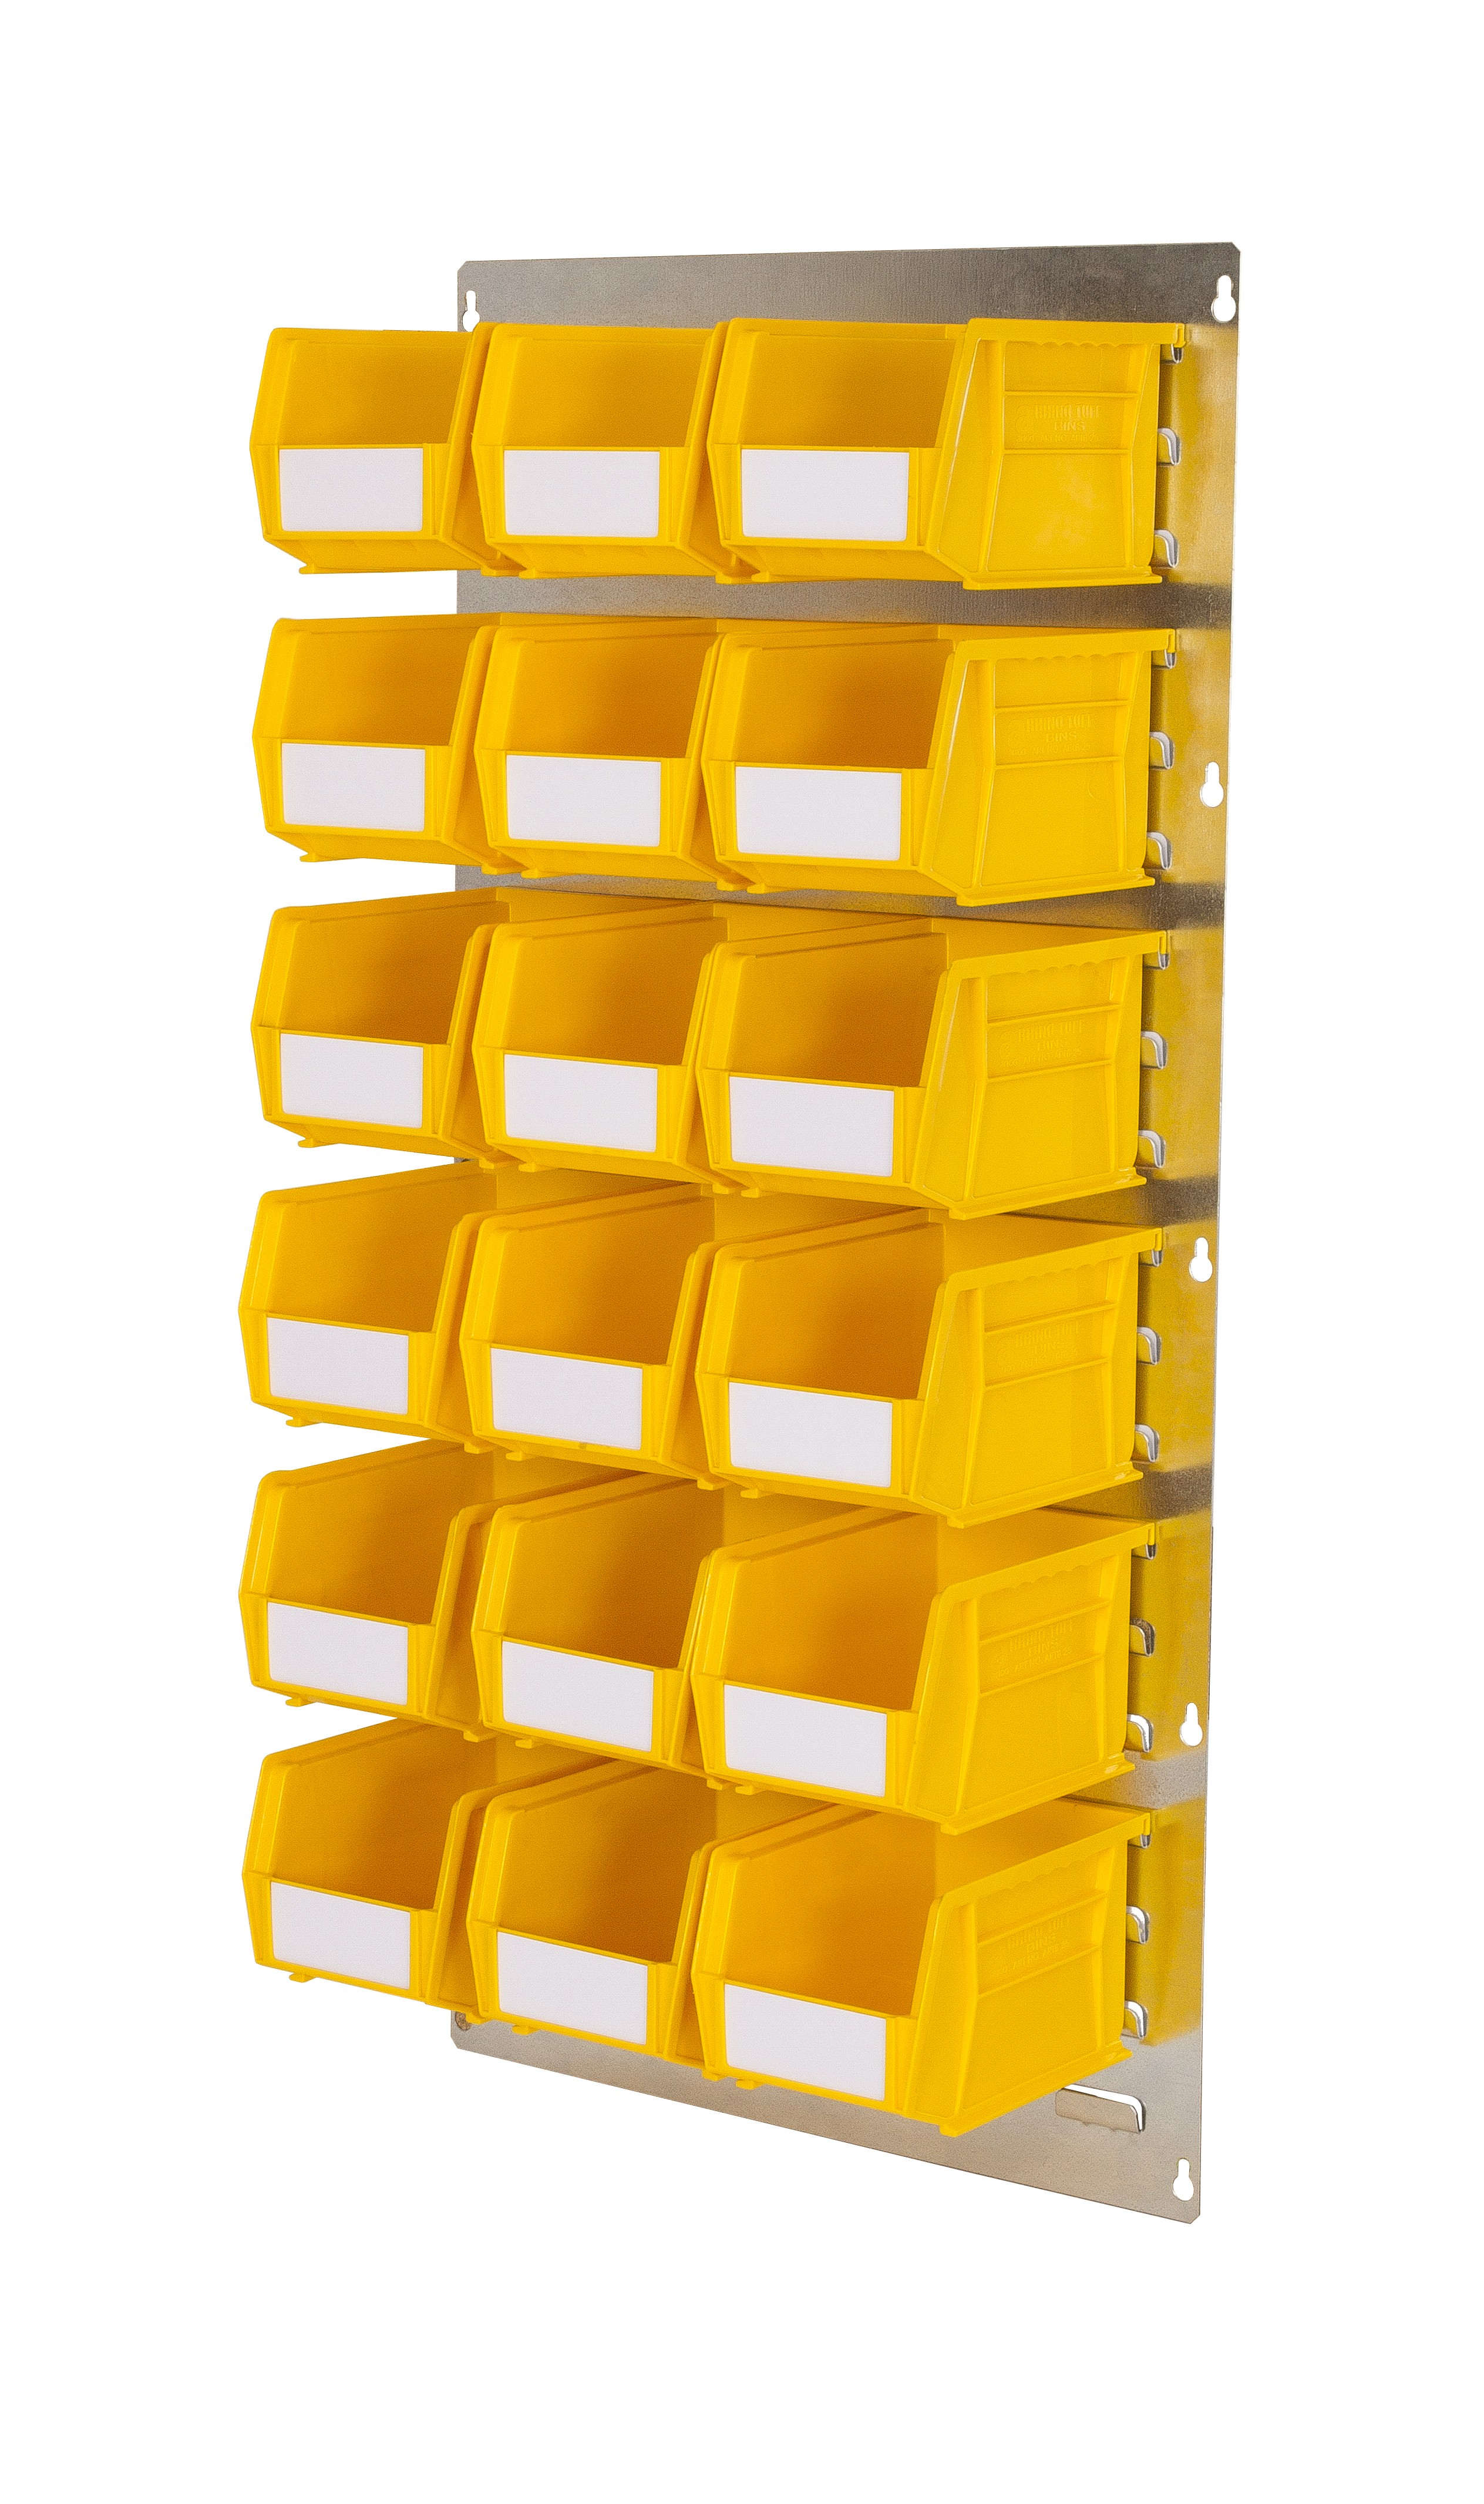 WALL LOUVRE PANELS WITH PLASTIC BINS (MP)